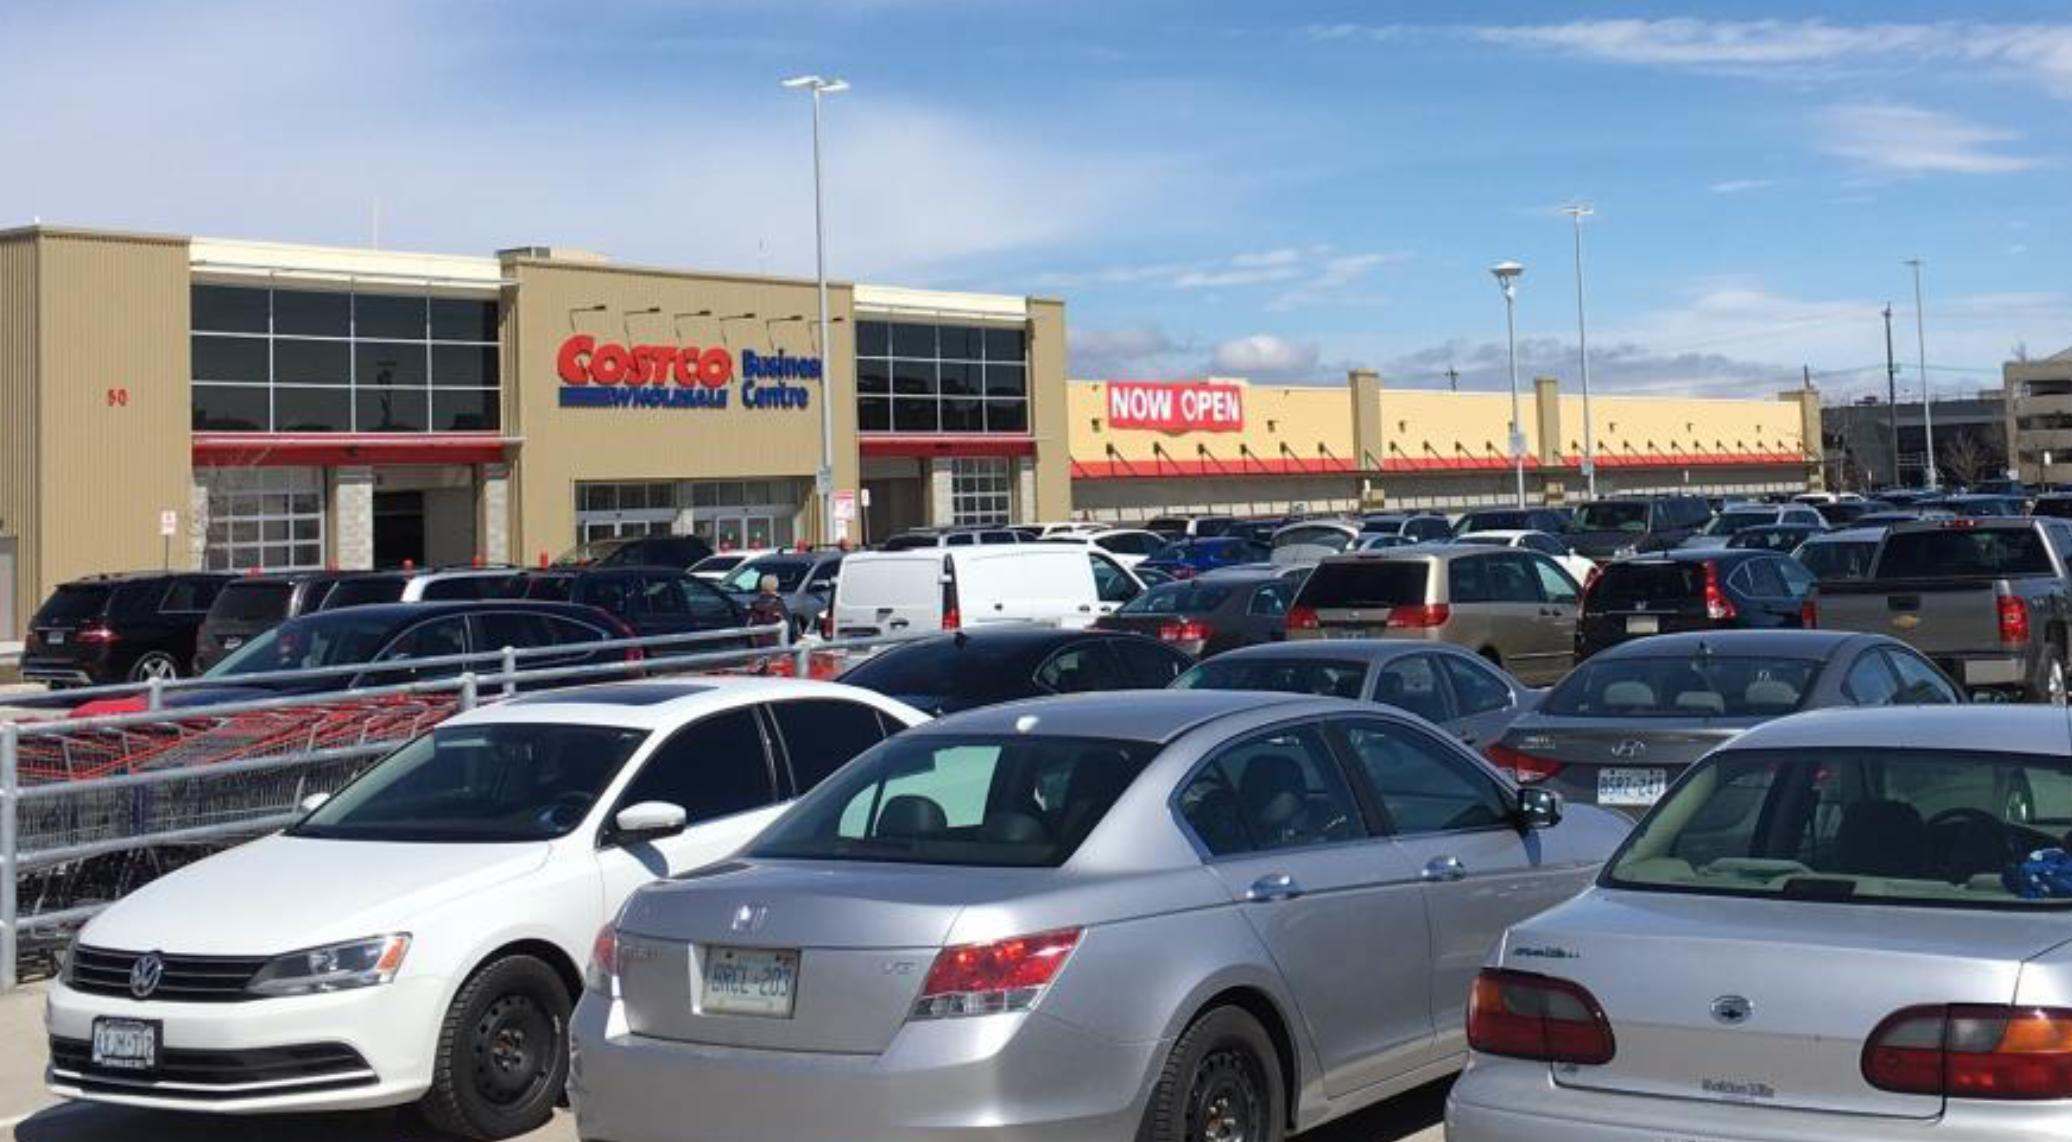 4 Reasons to Not Renew Your Costco Membership